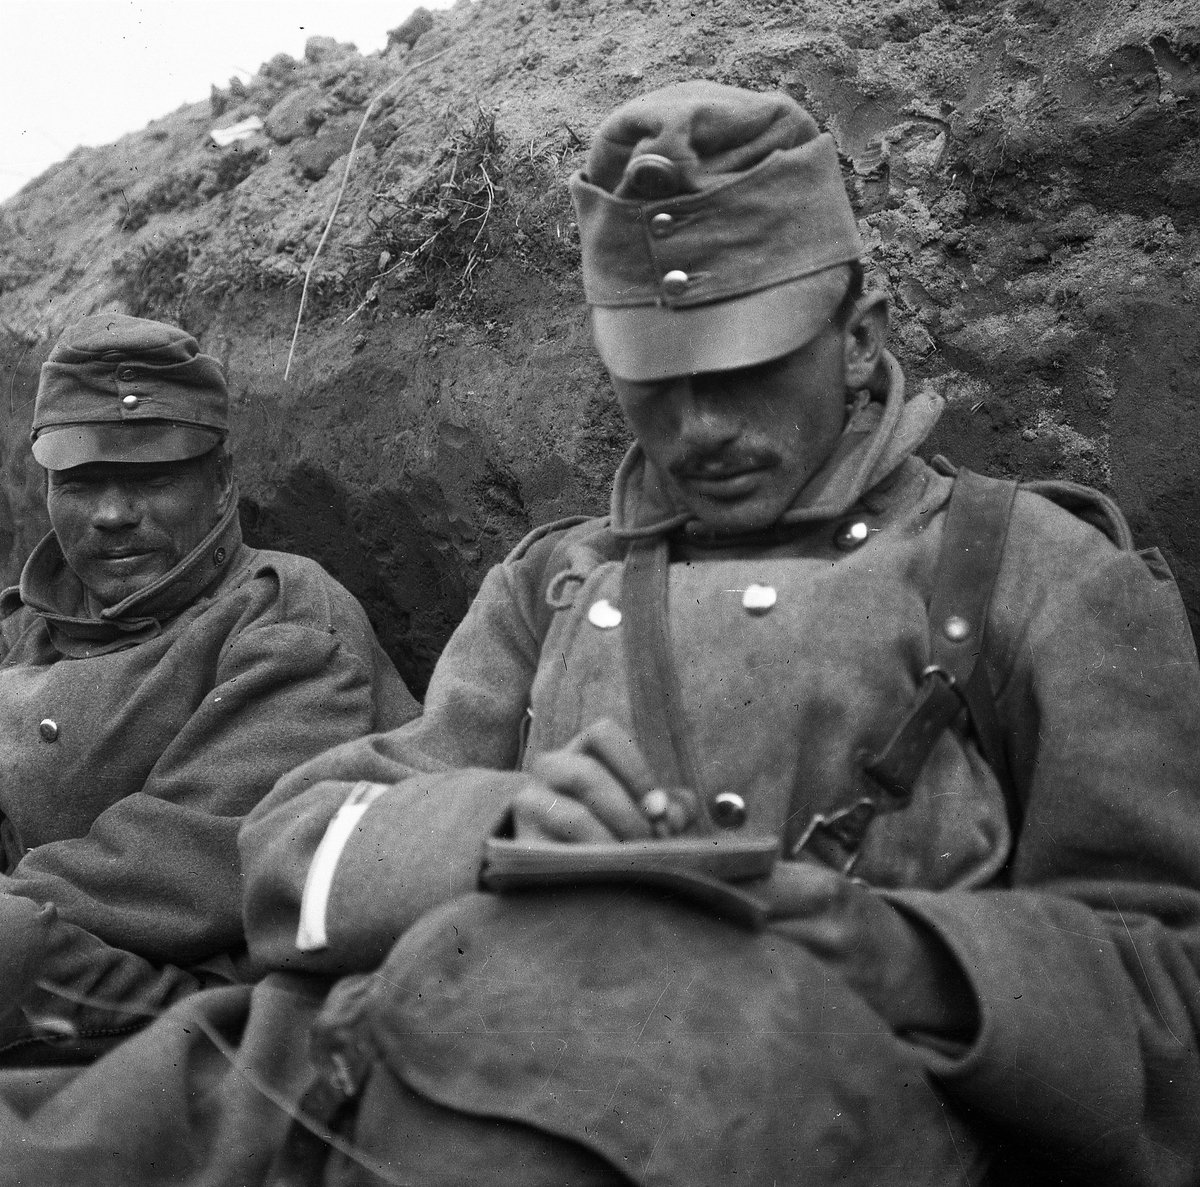 """""""My life's so little now, such a mere nothing, like a sigh that I send homewards on a sleepless night [...] Who knows when the fate that has dragged me into the 5th calender year of the war will take me home?""""- Hungarian soldier's letter home 17.1.1918  #PikeGrey #WW1 #FWW #Quote"""